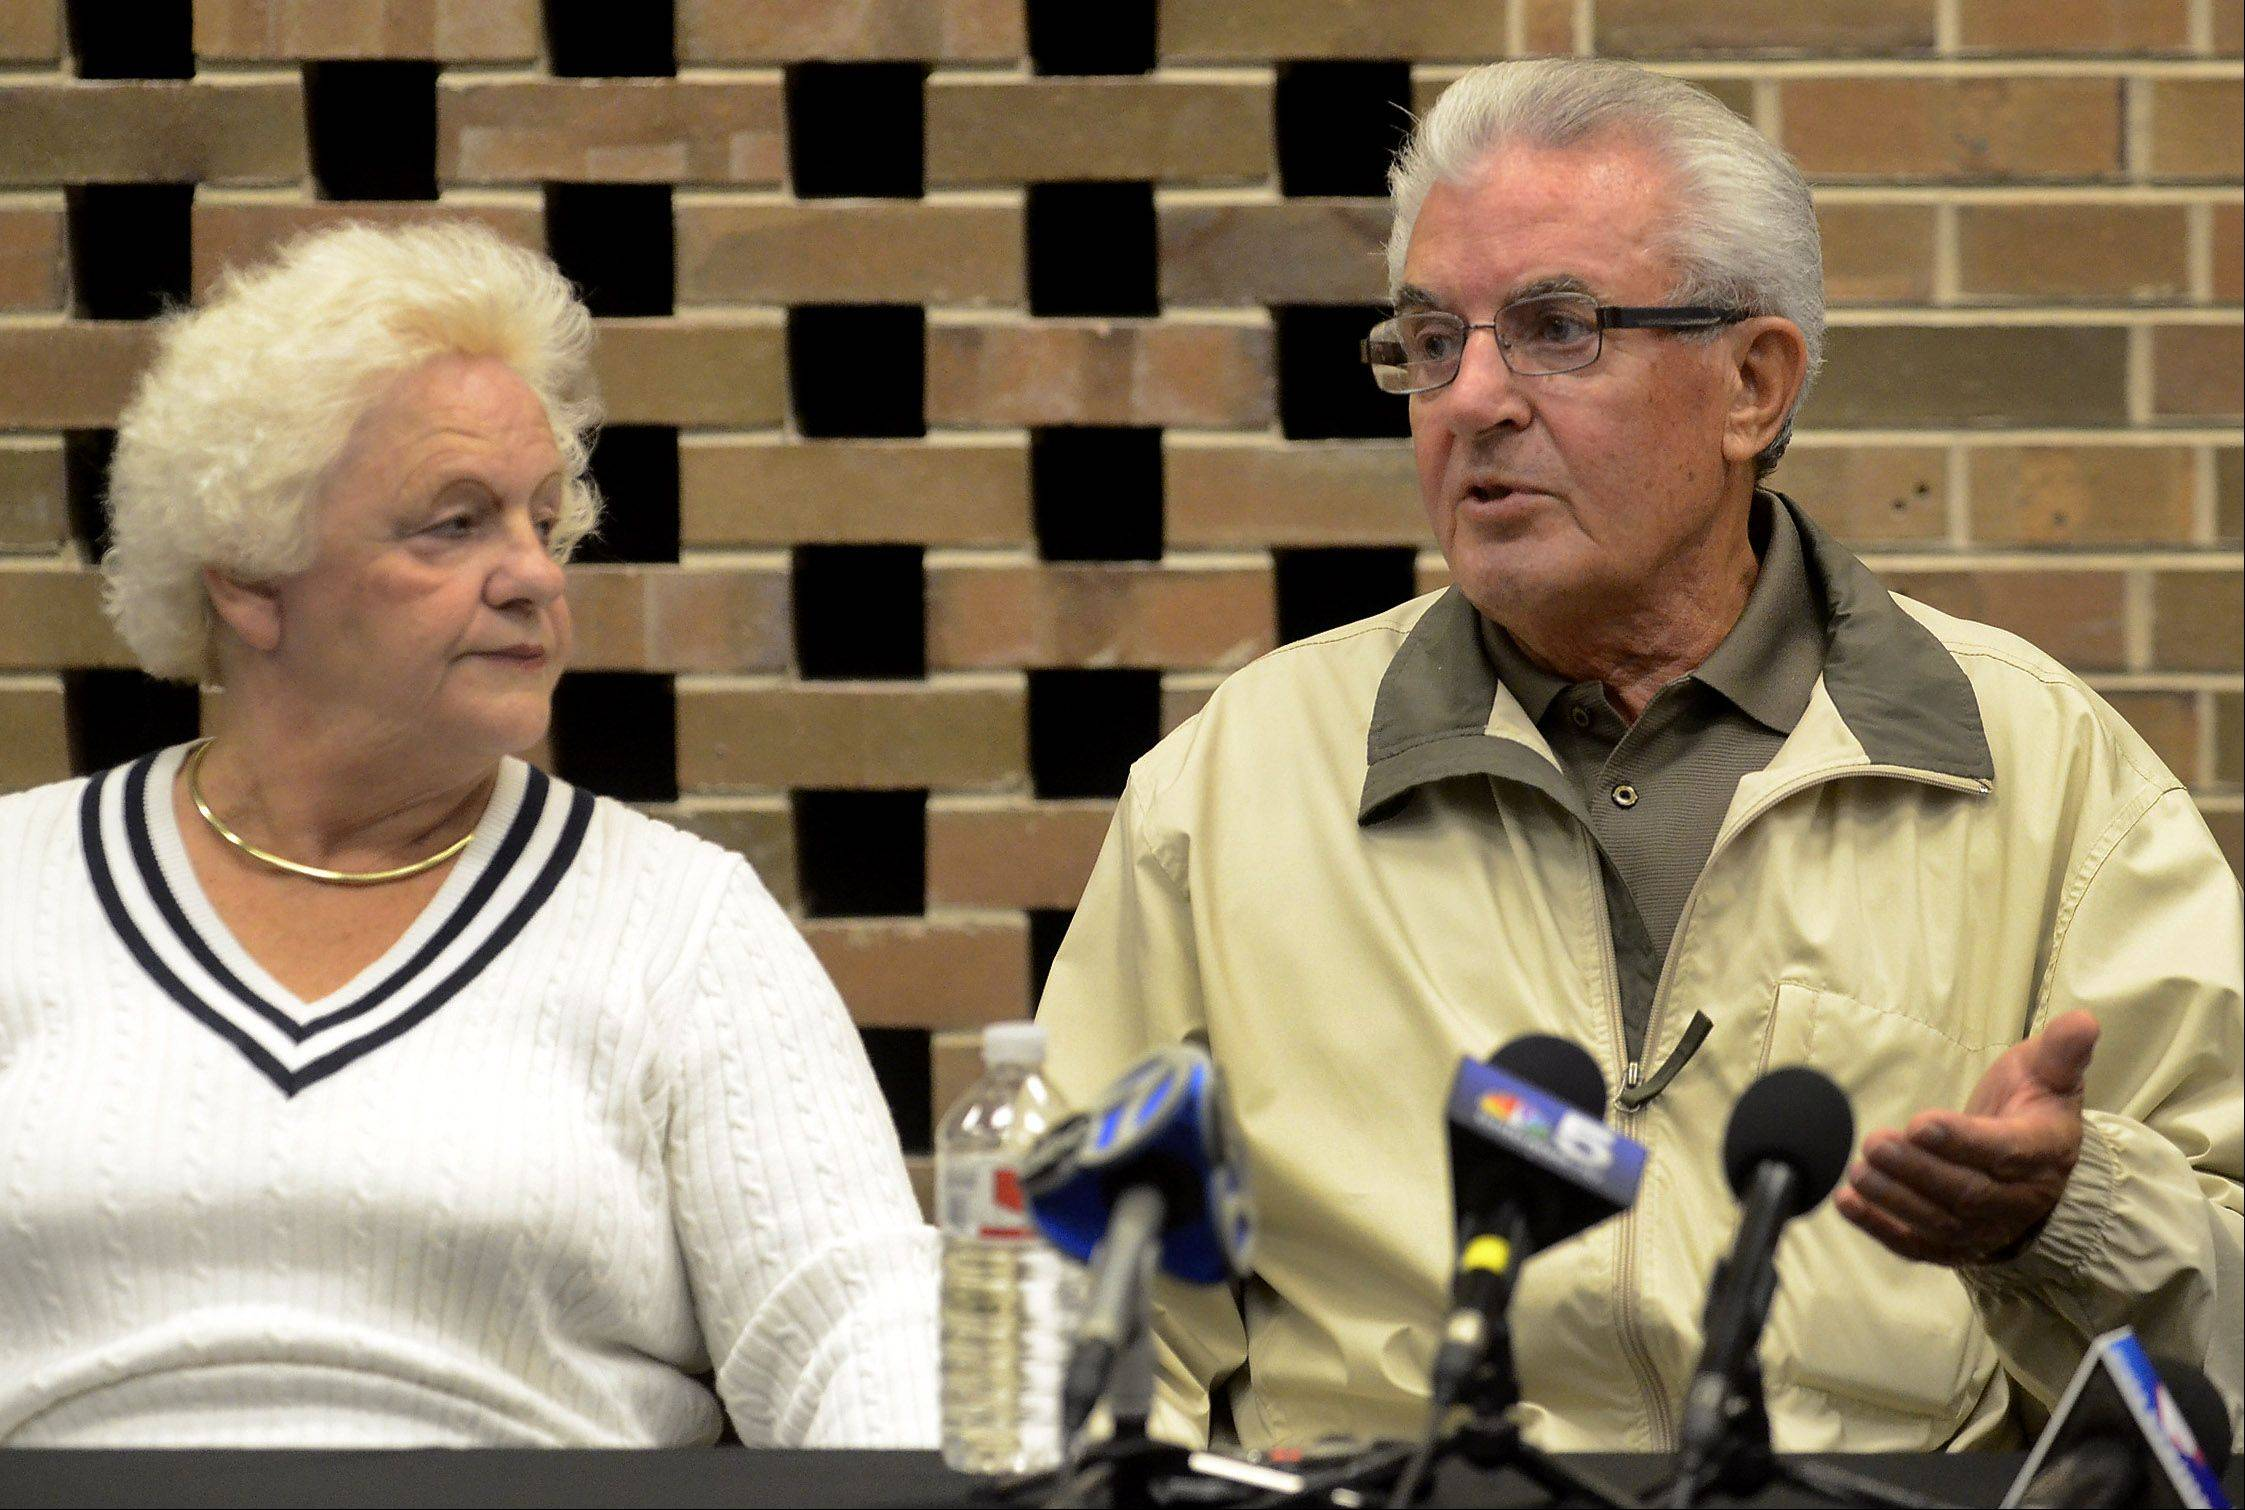 Tony and Jadwiga Dzierzak, parents of a Schaumburg woman who went missing Oct. 11, appealed for her to come Wednesday. Authorities believe Beata Candre left home voluntarily.